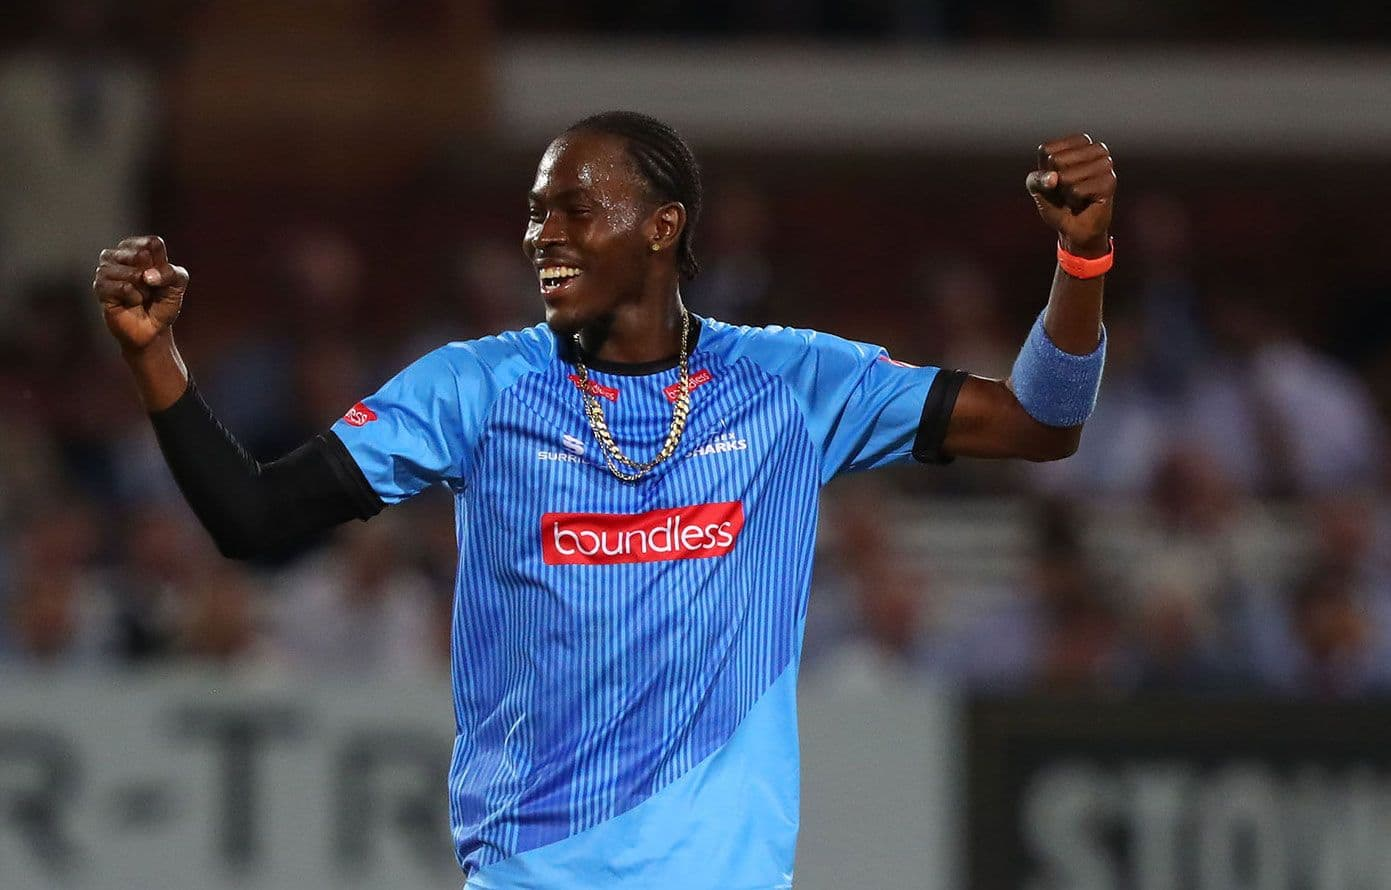 Jofra Archer could enhance England's World Cup squad: Nasser Hussain